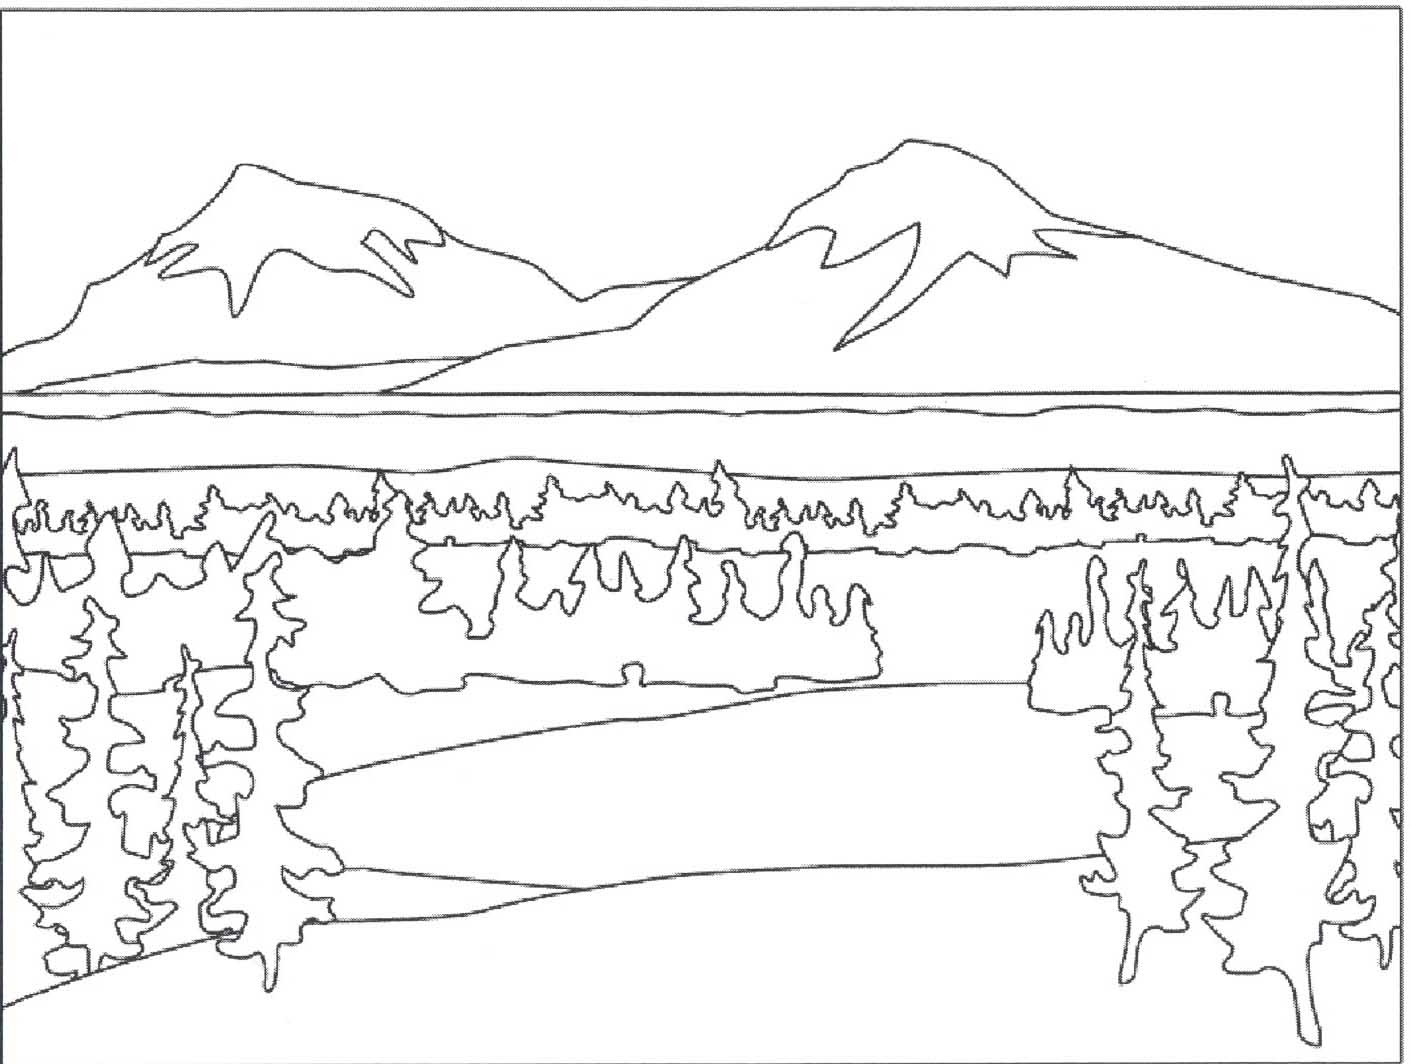 landscape coloring pages - simple nature coloring pages 1000 images about coloring pages on pinterest